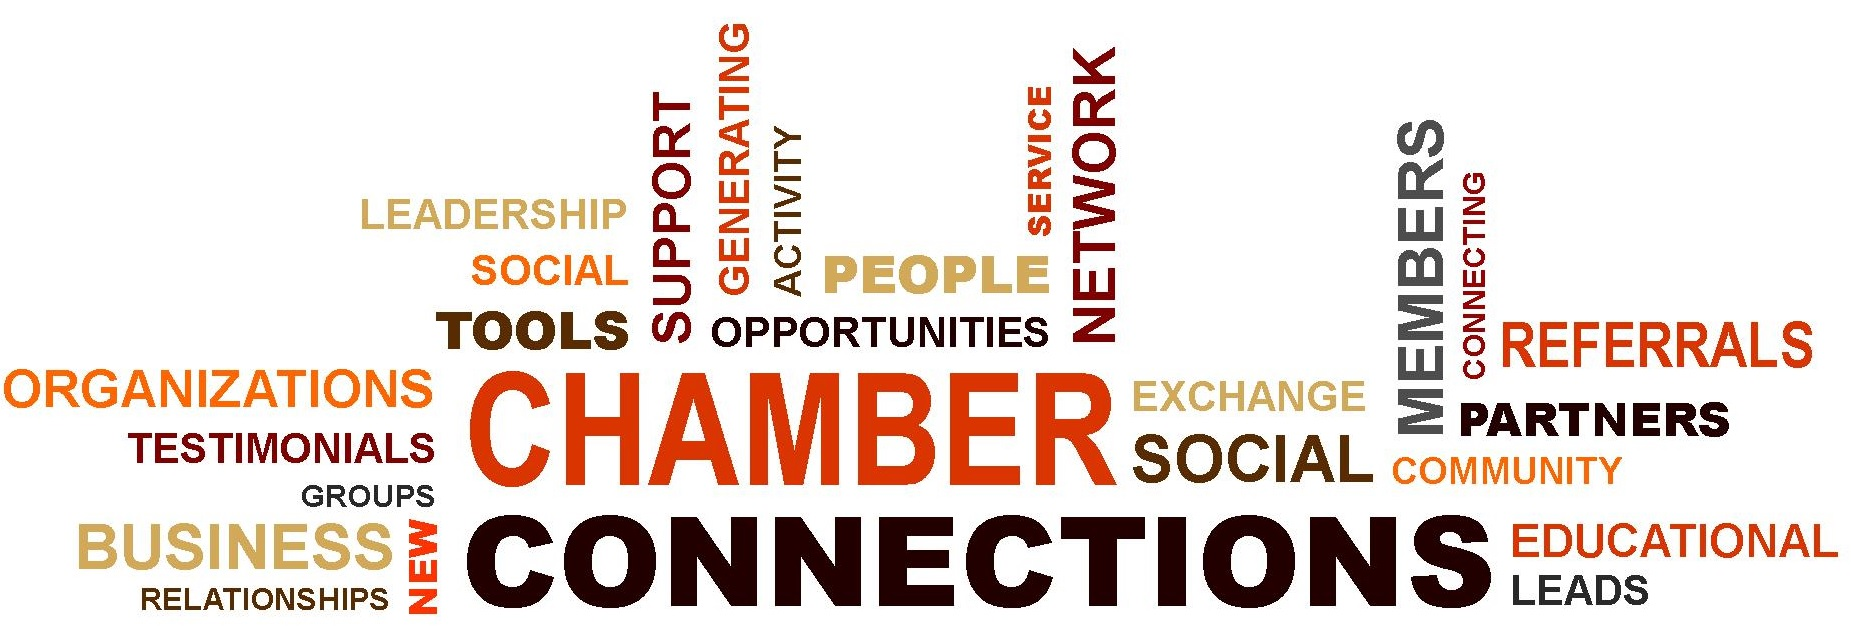 CHAMBER CONNECTIONS LOGO HORIZONTAL (1)